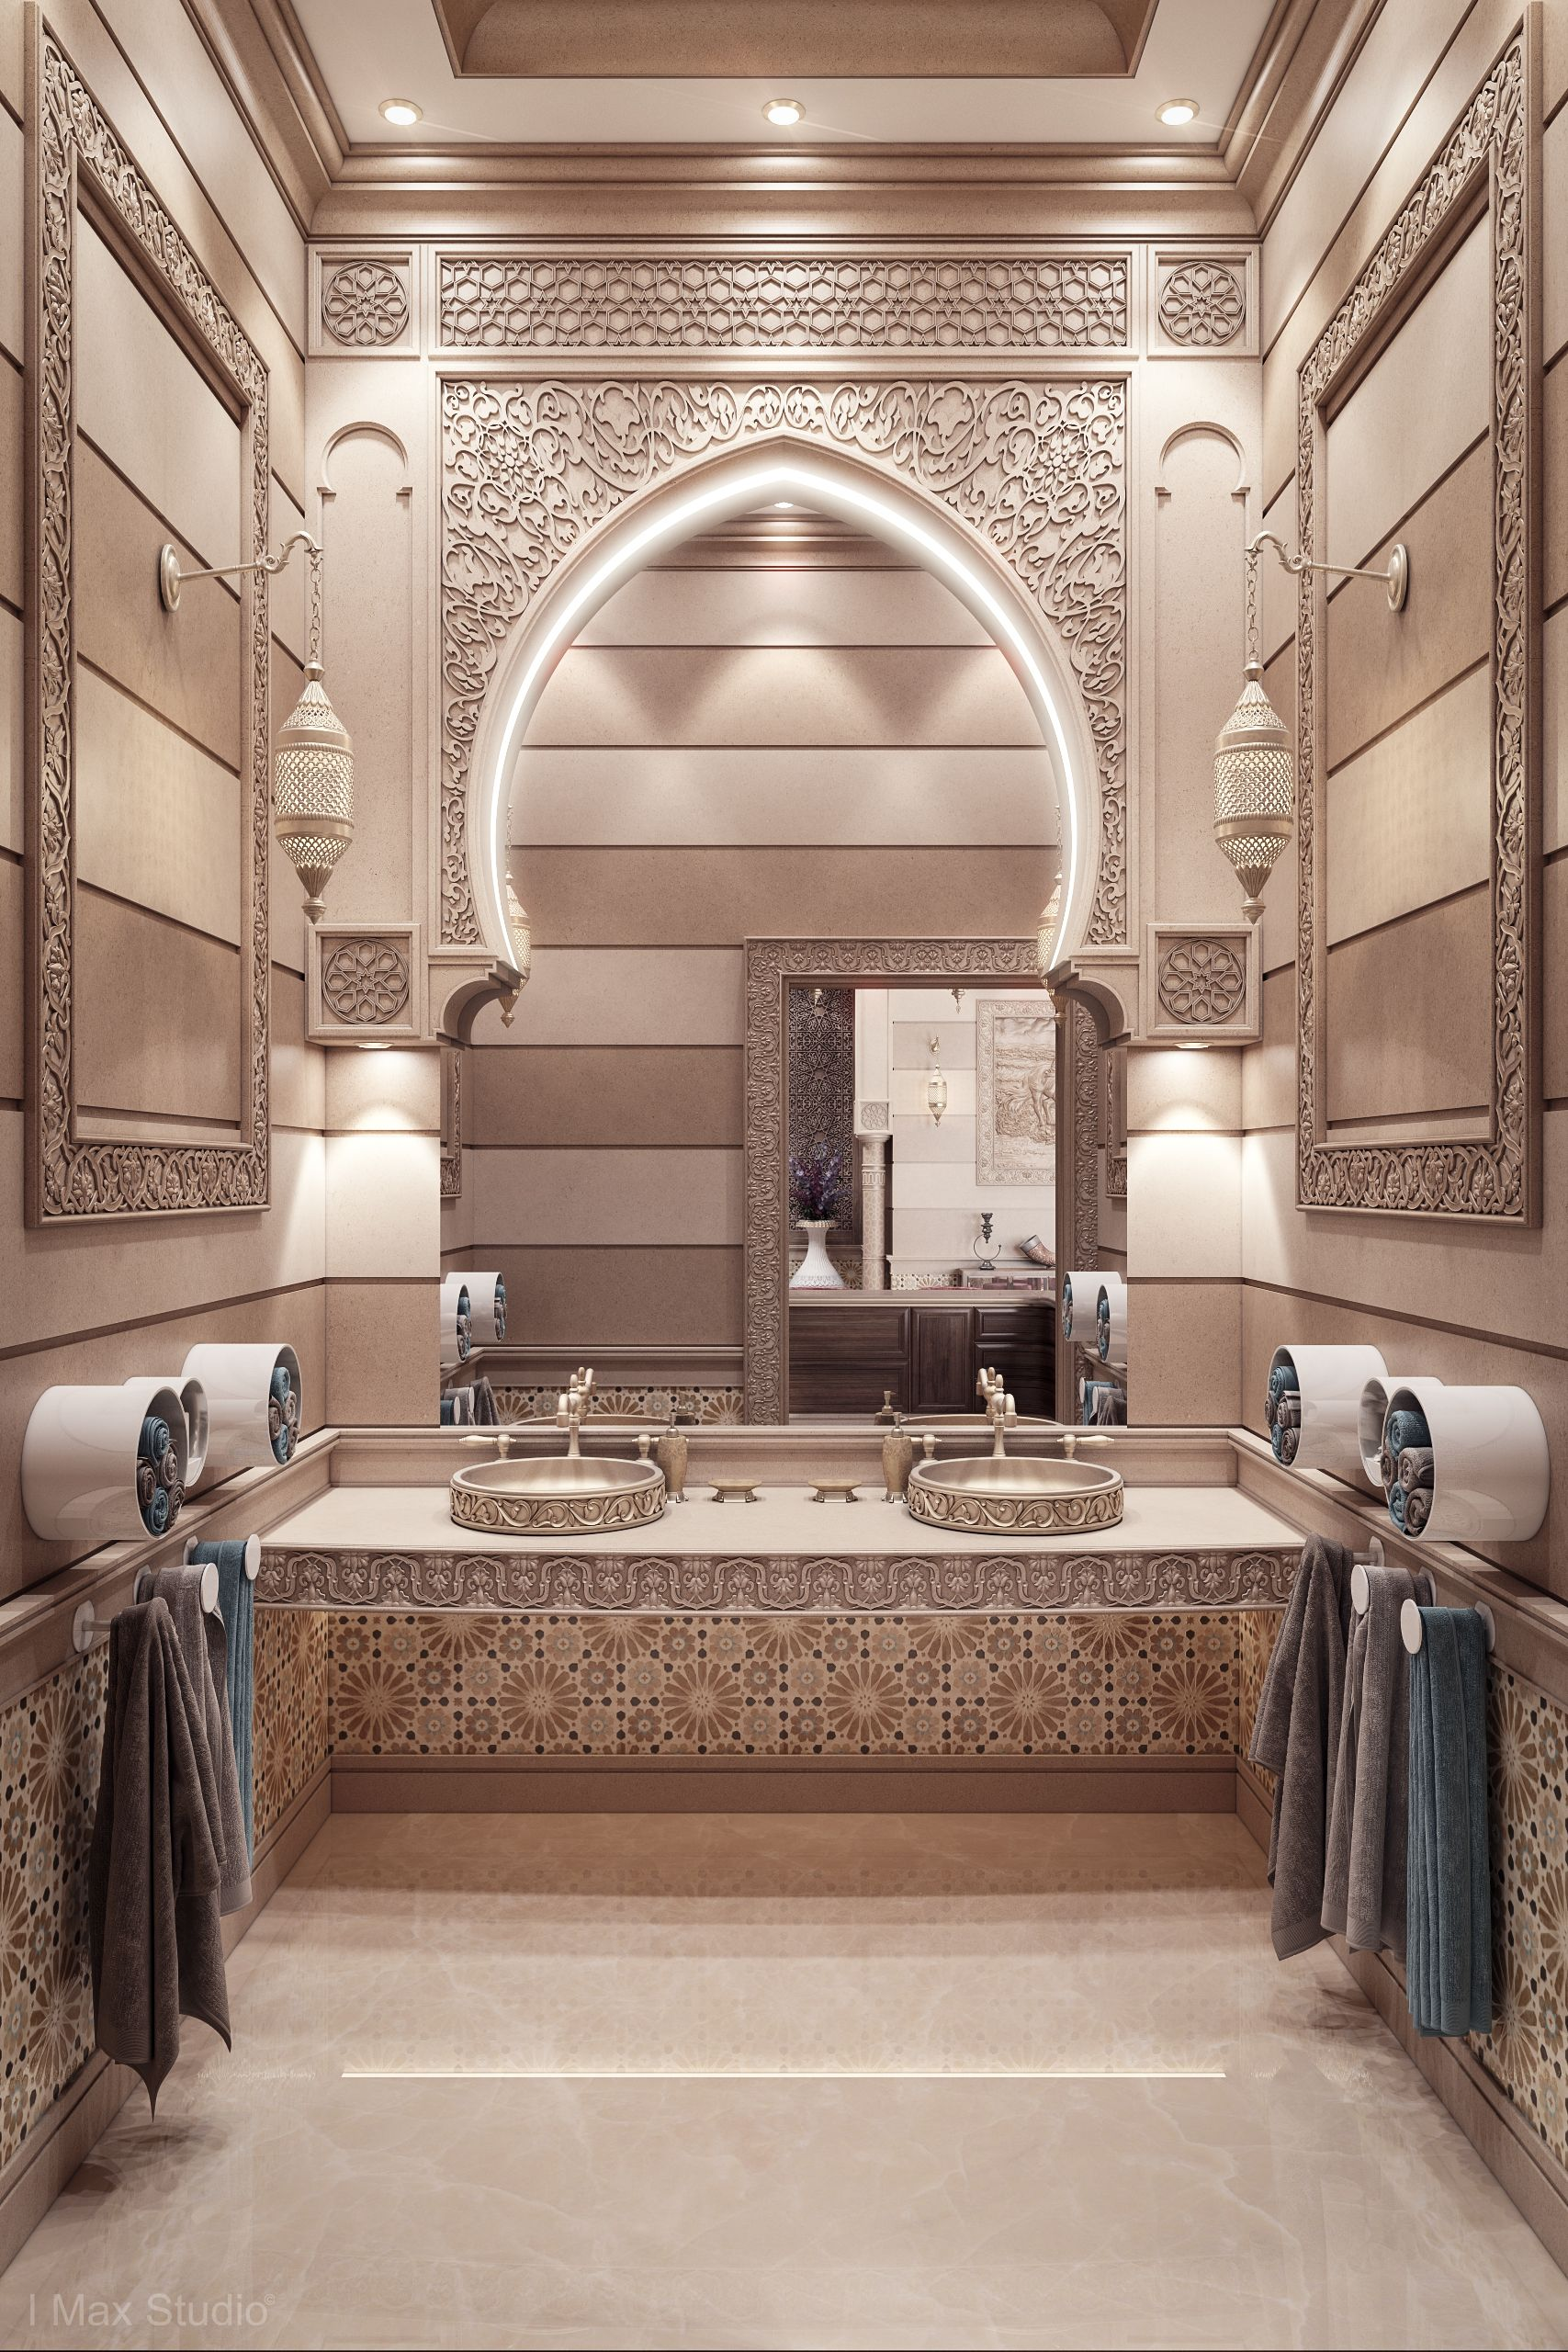 Moroccan Interior Design: 4. Bathroom Graphic Tile Patterns With Infinite